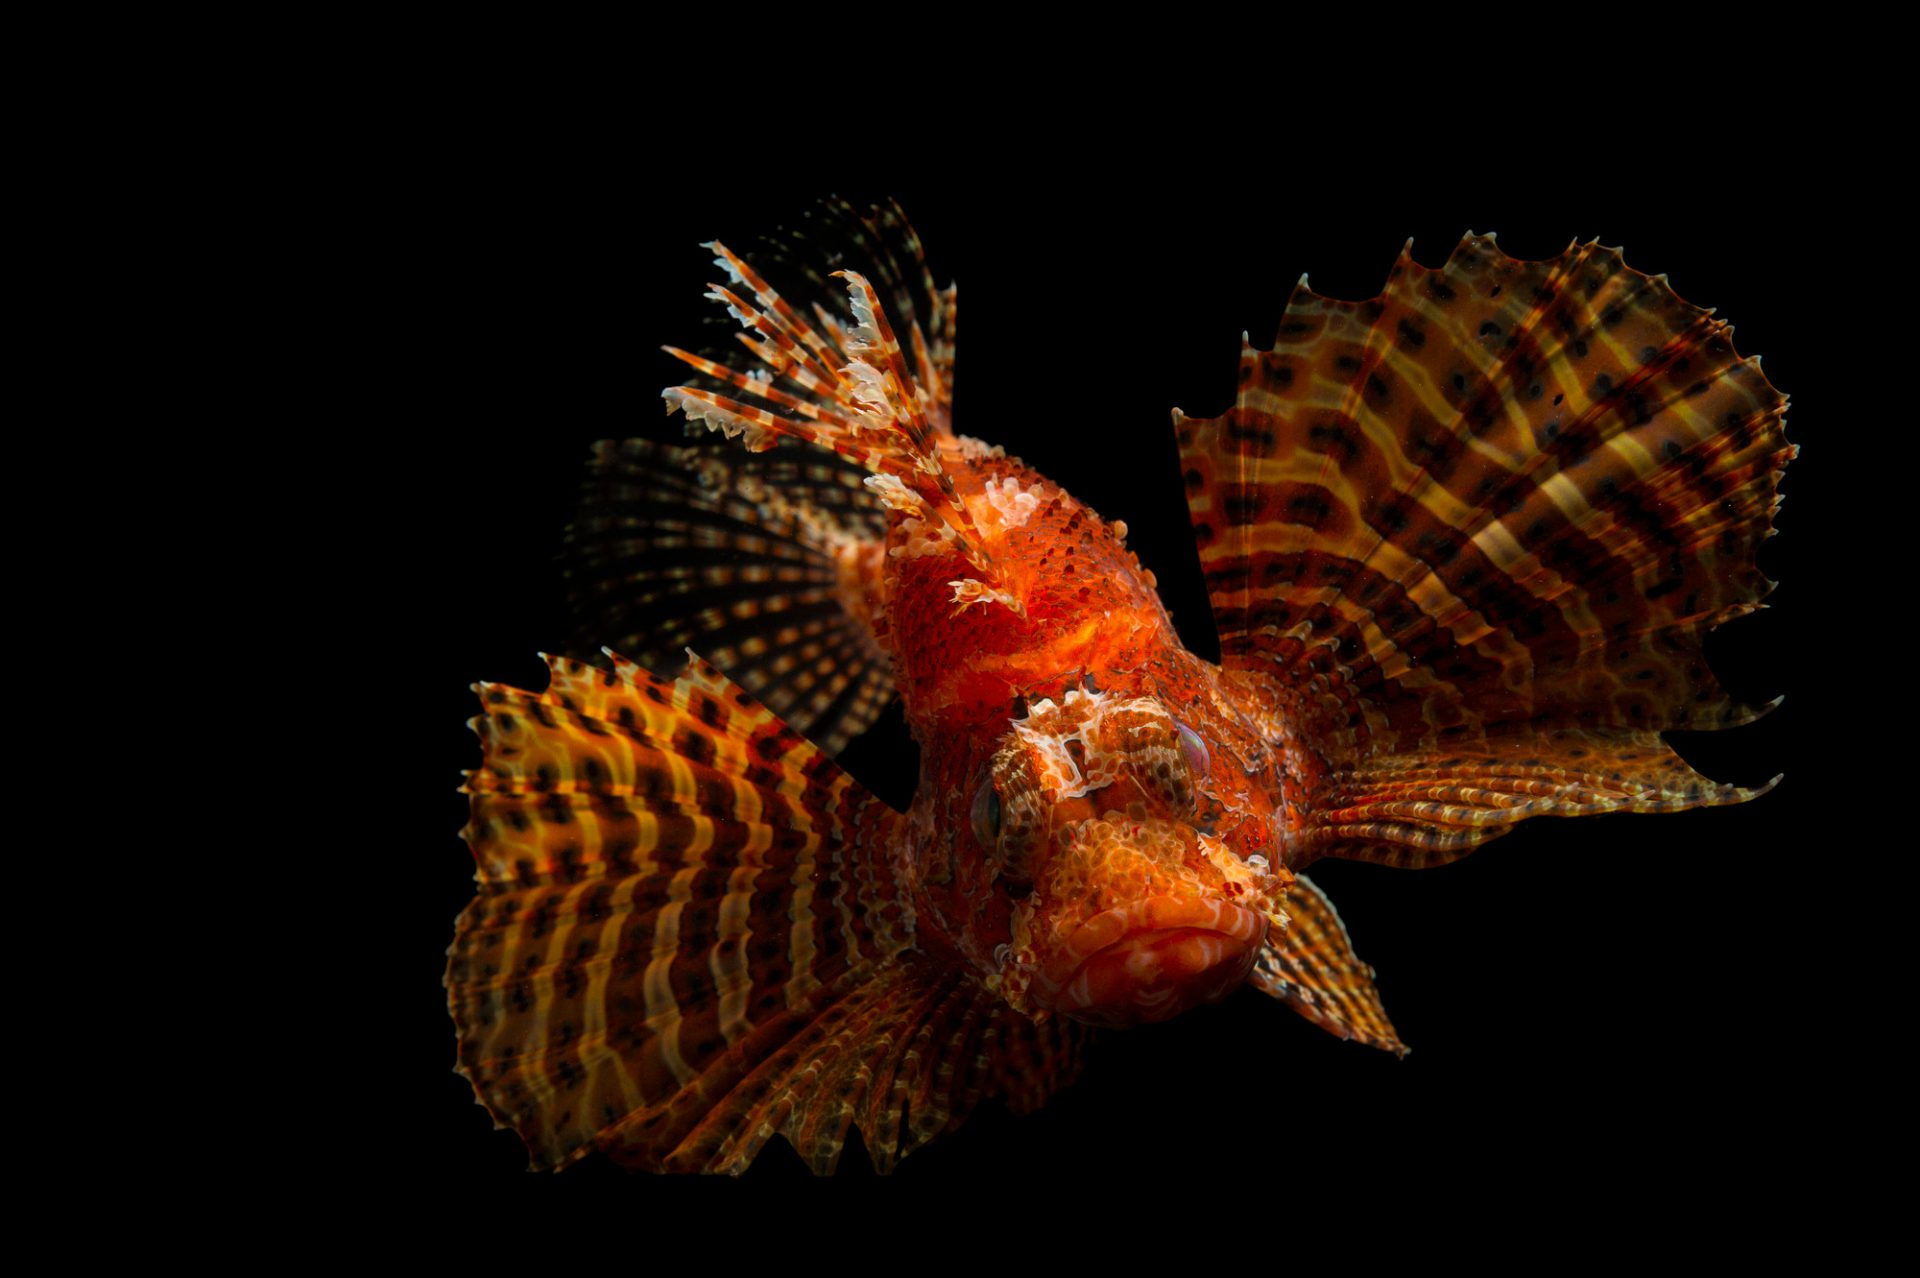 Picture of a fuzzy dwarf lionfish (Dendrochirus brachypterus) at Omaha's Henry Doorly Zoo and Aquarium.